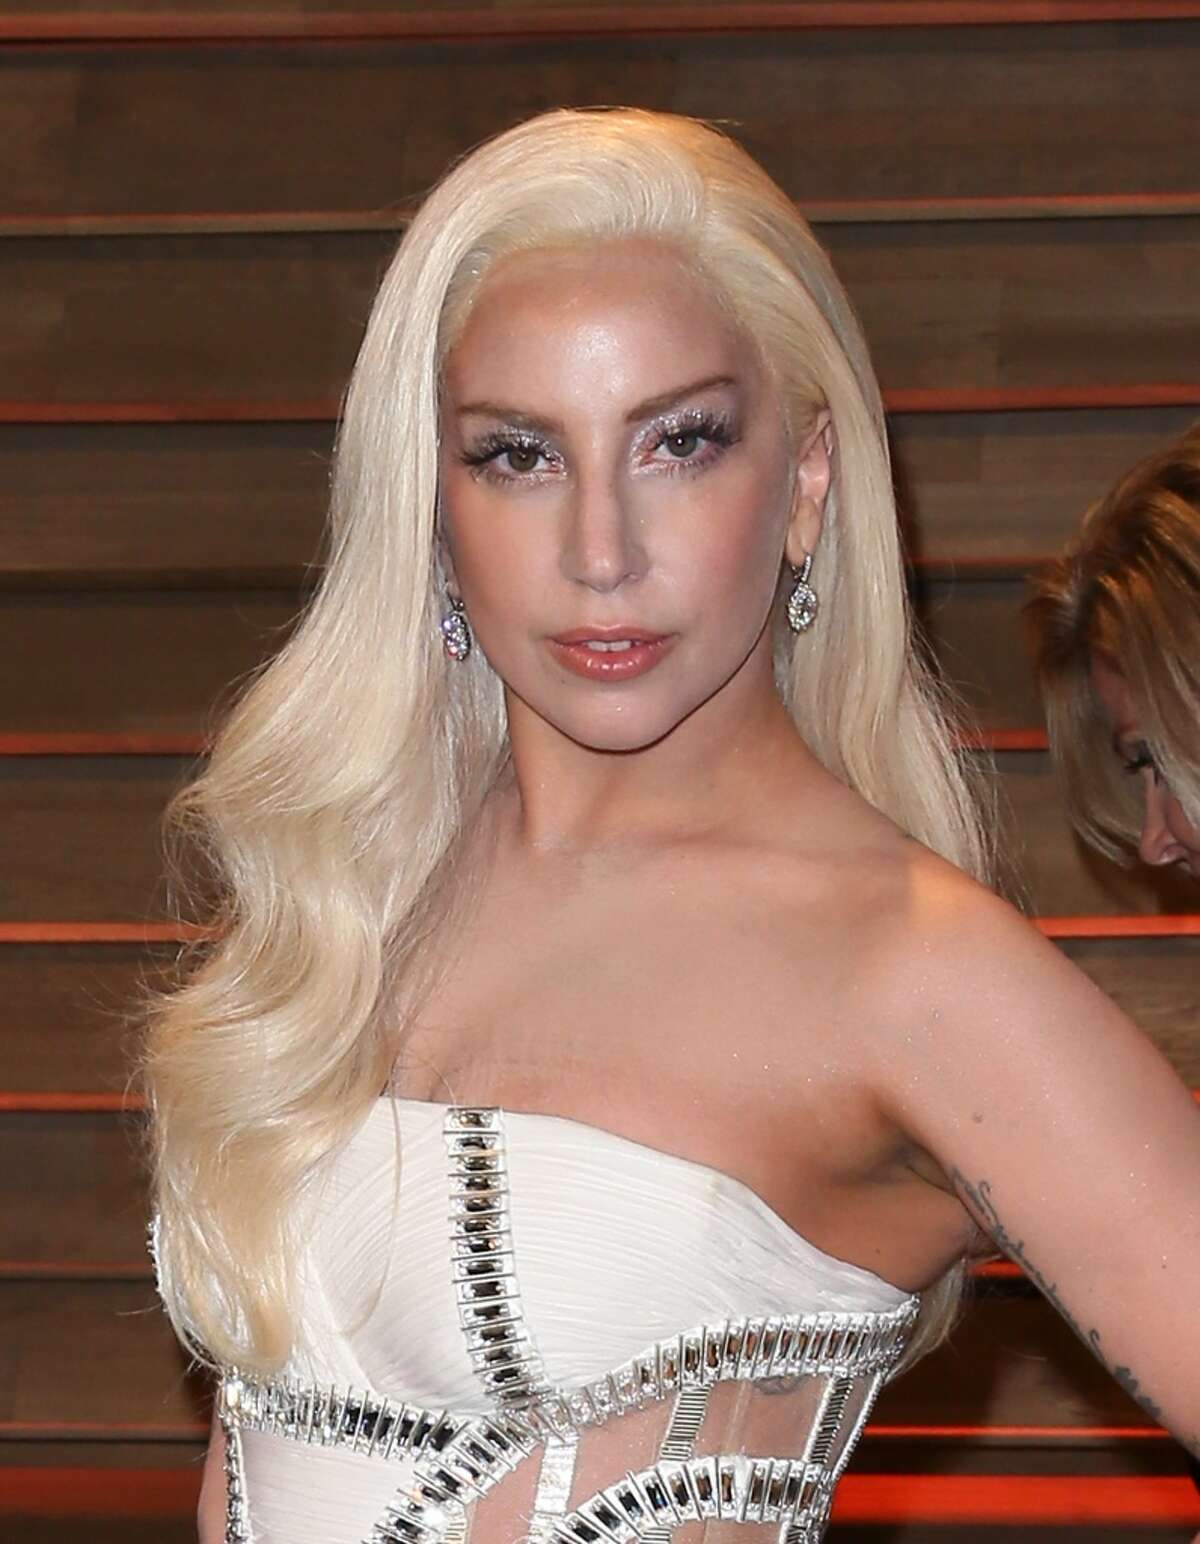 Apparently Lady Gaga dabbles in ghost busting. Reports claim she shelled out $47,000 for an electro magnetic field meter to detect a ghost that she believed was haunting her.- celebritytoob.com